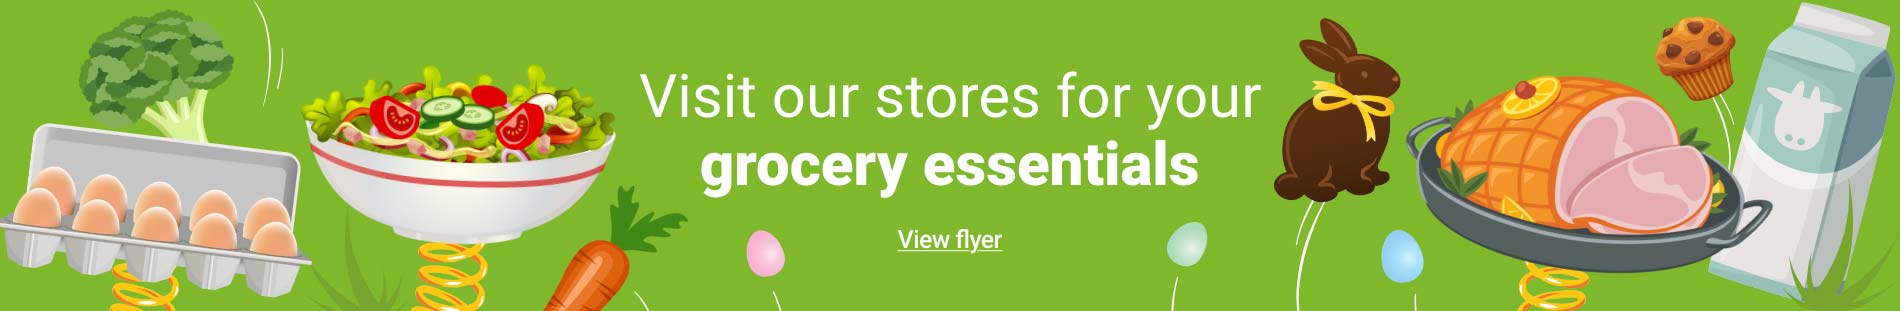 Visit our store for your grocery essentials